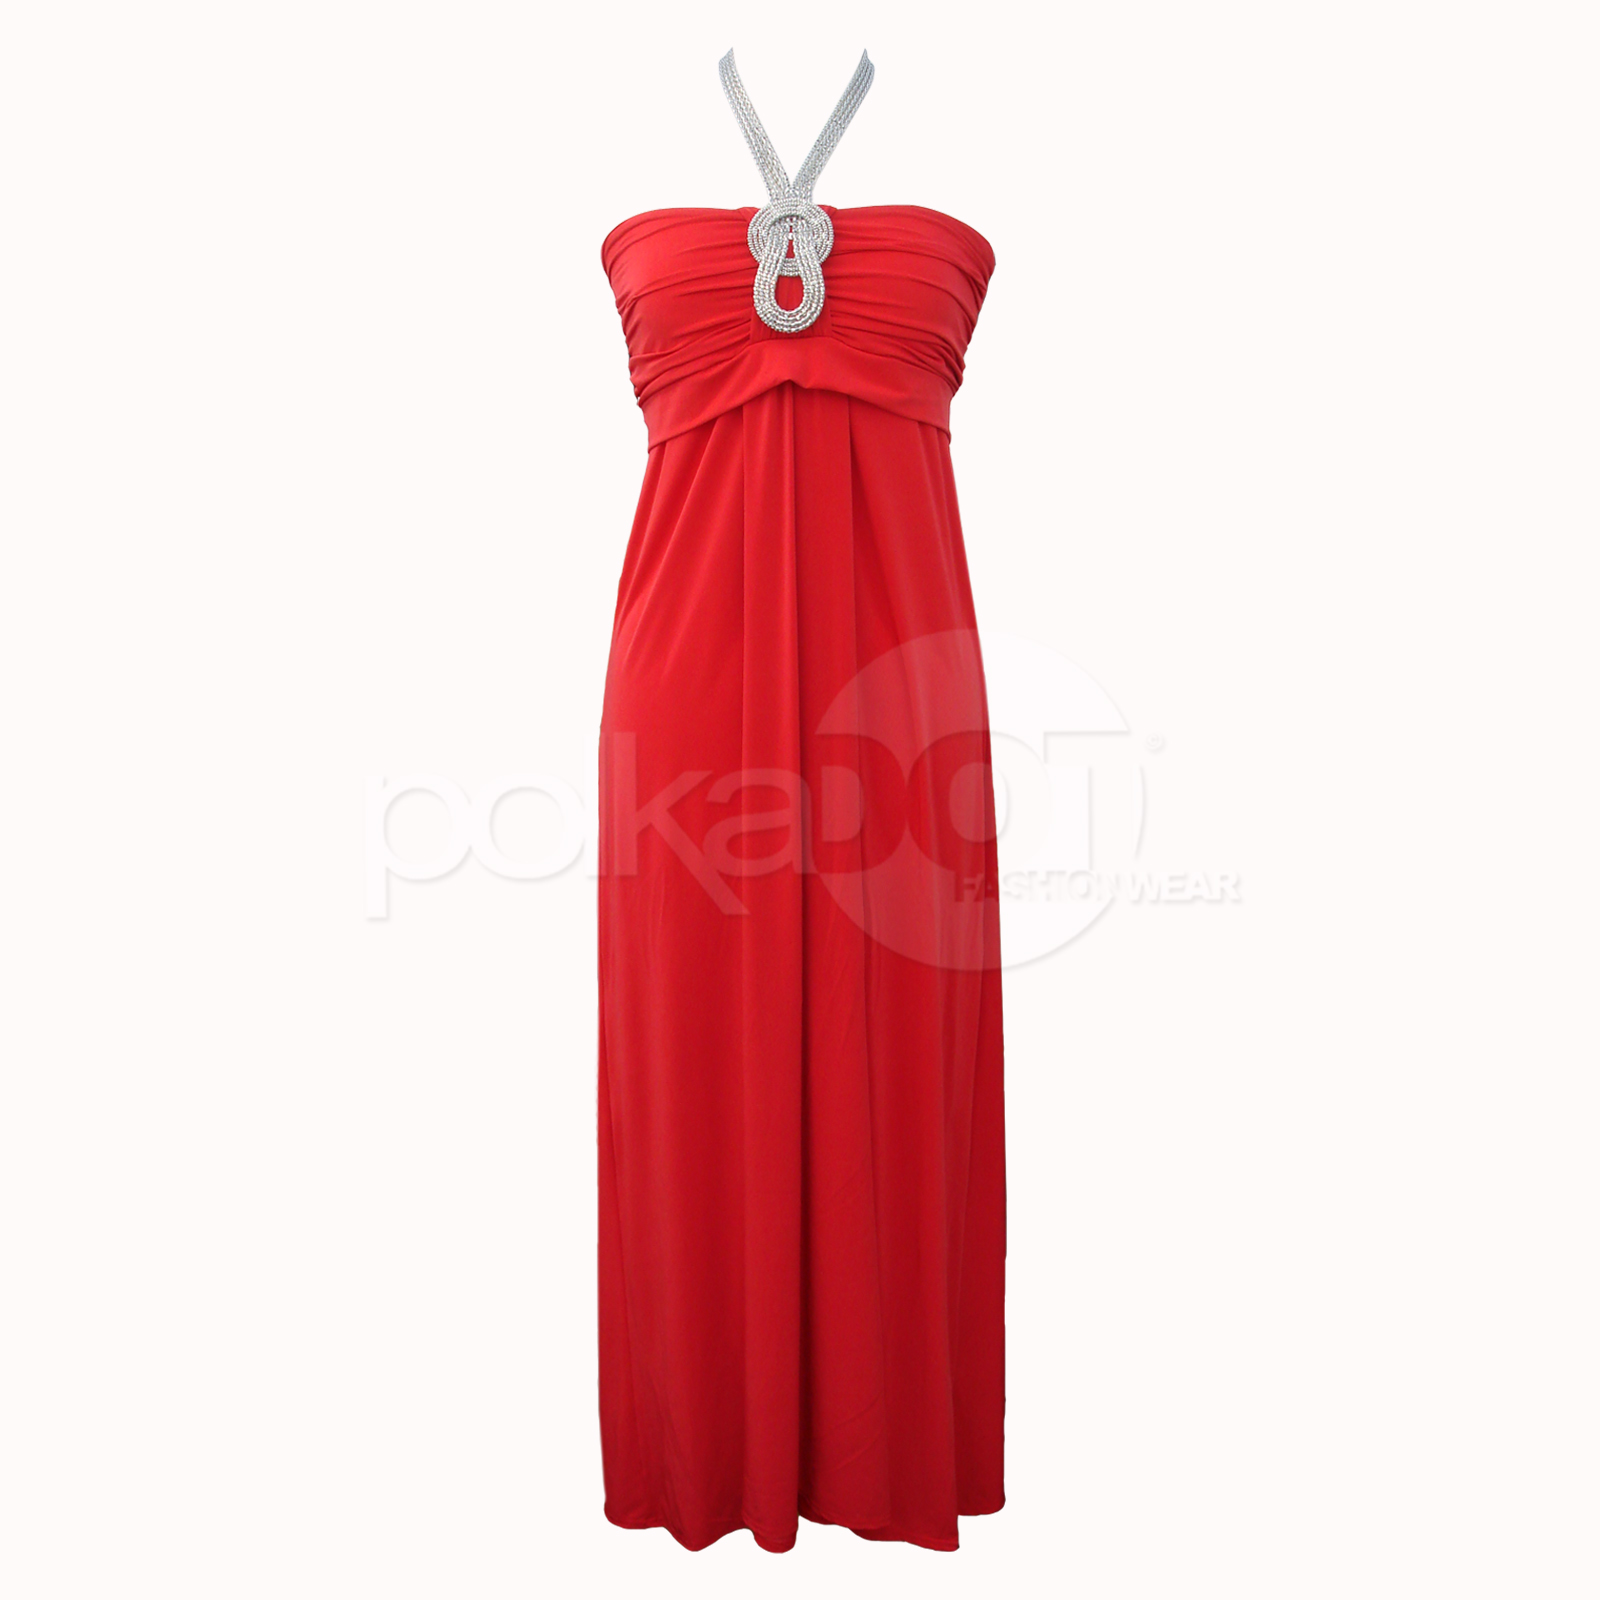 New long elegant glamorous necklace evening wedding party for Maxi dresses for wedding party